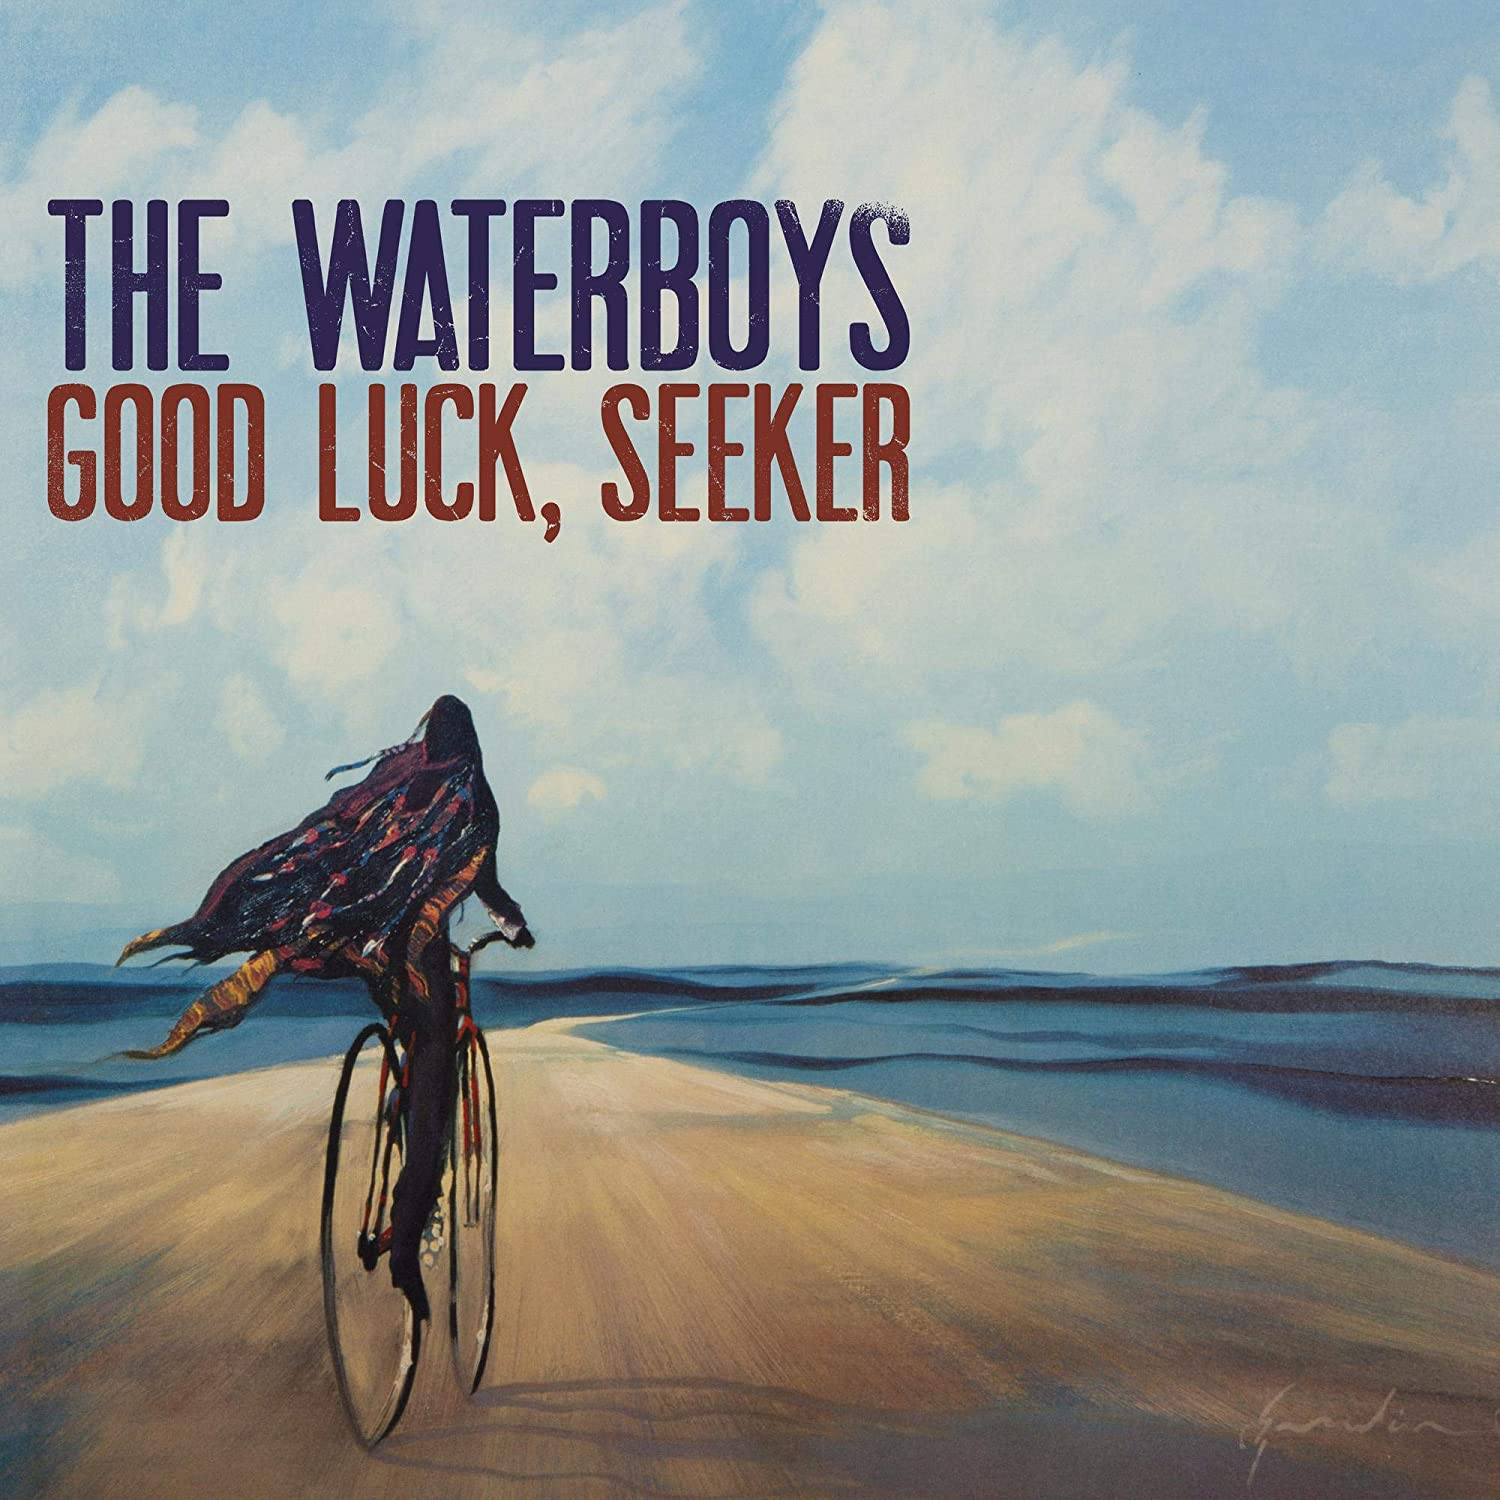 THE WATERBOYS:- GOOD LUCK, SEEKER DLX [CD] (Due out 21.08.20)